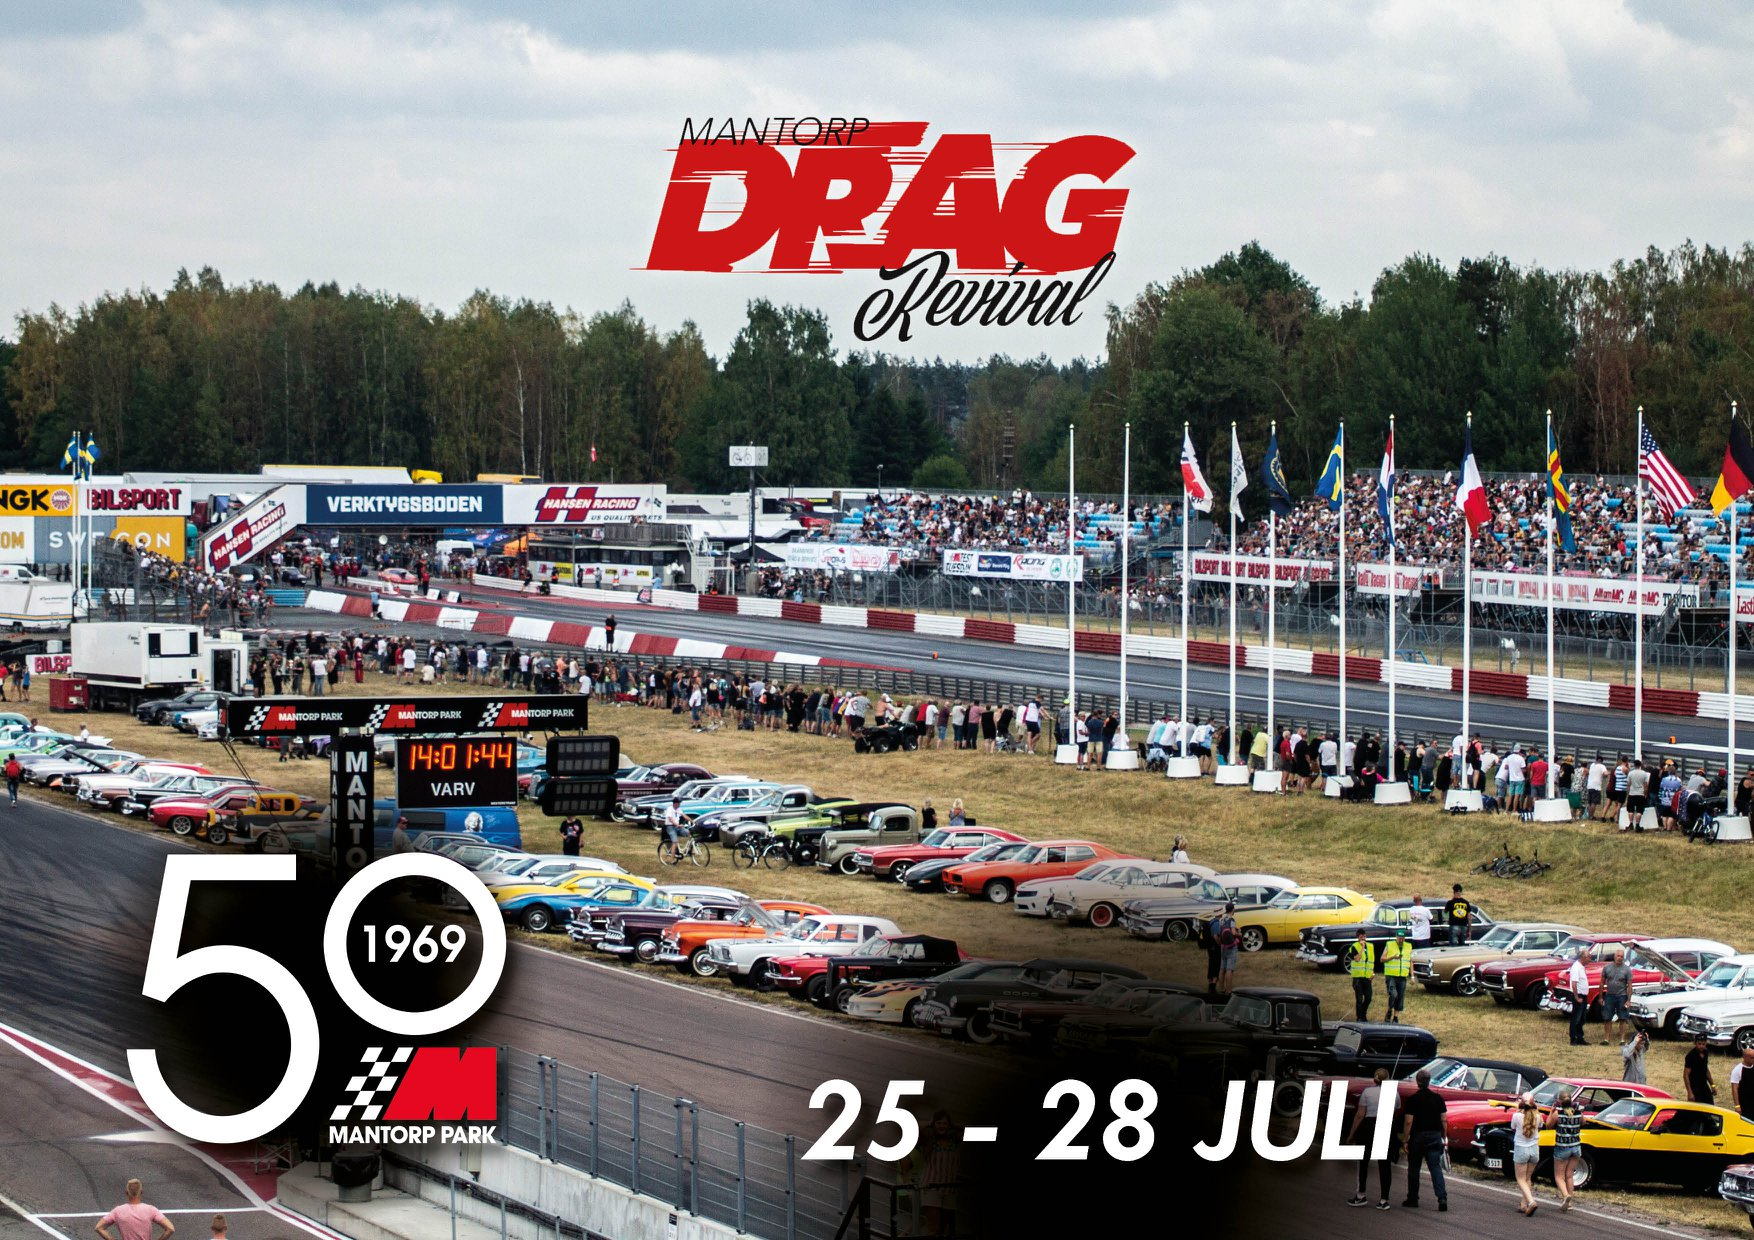 Mantorp Drag Revivel